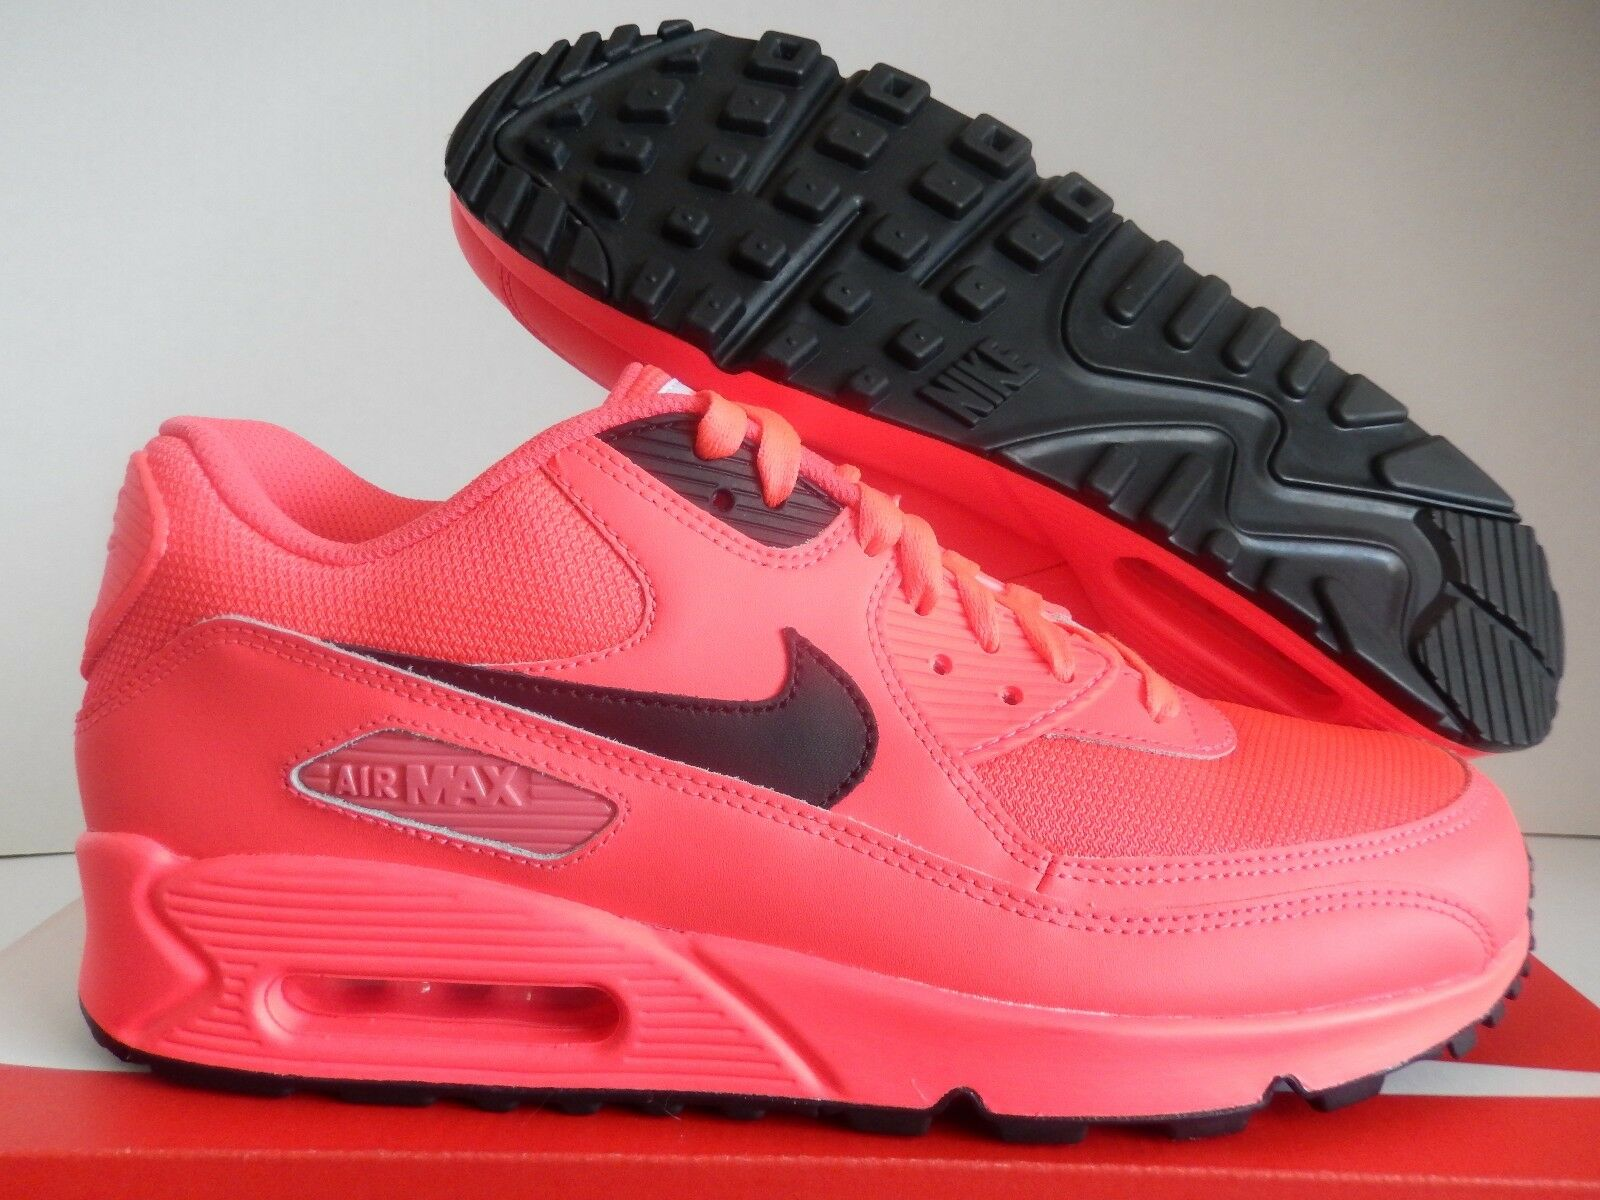 NIKE AIR MAX 90 ID INFRARED-BLACK SZ 9.5 [653533-983]